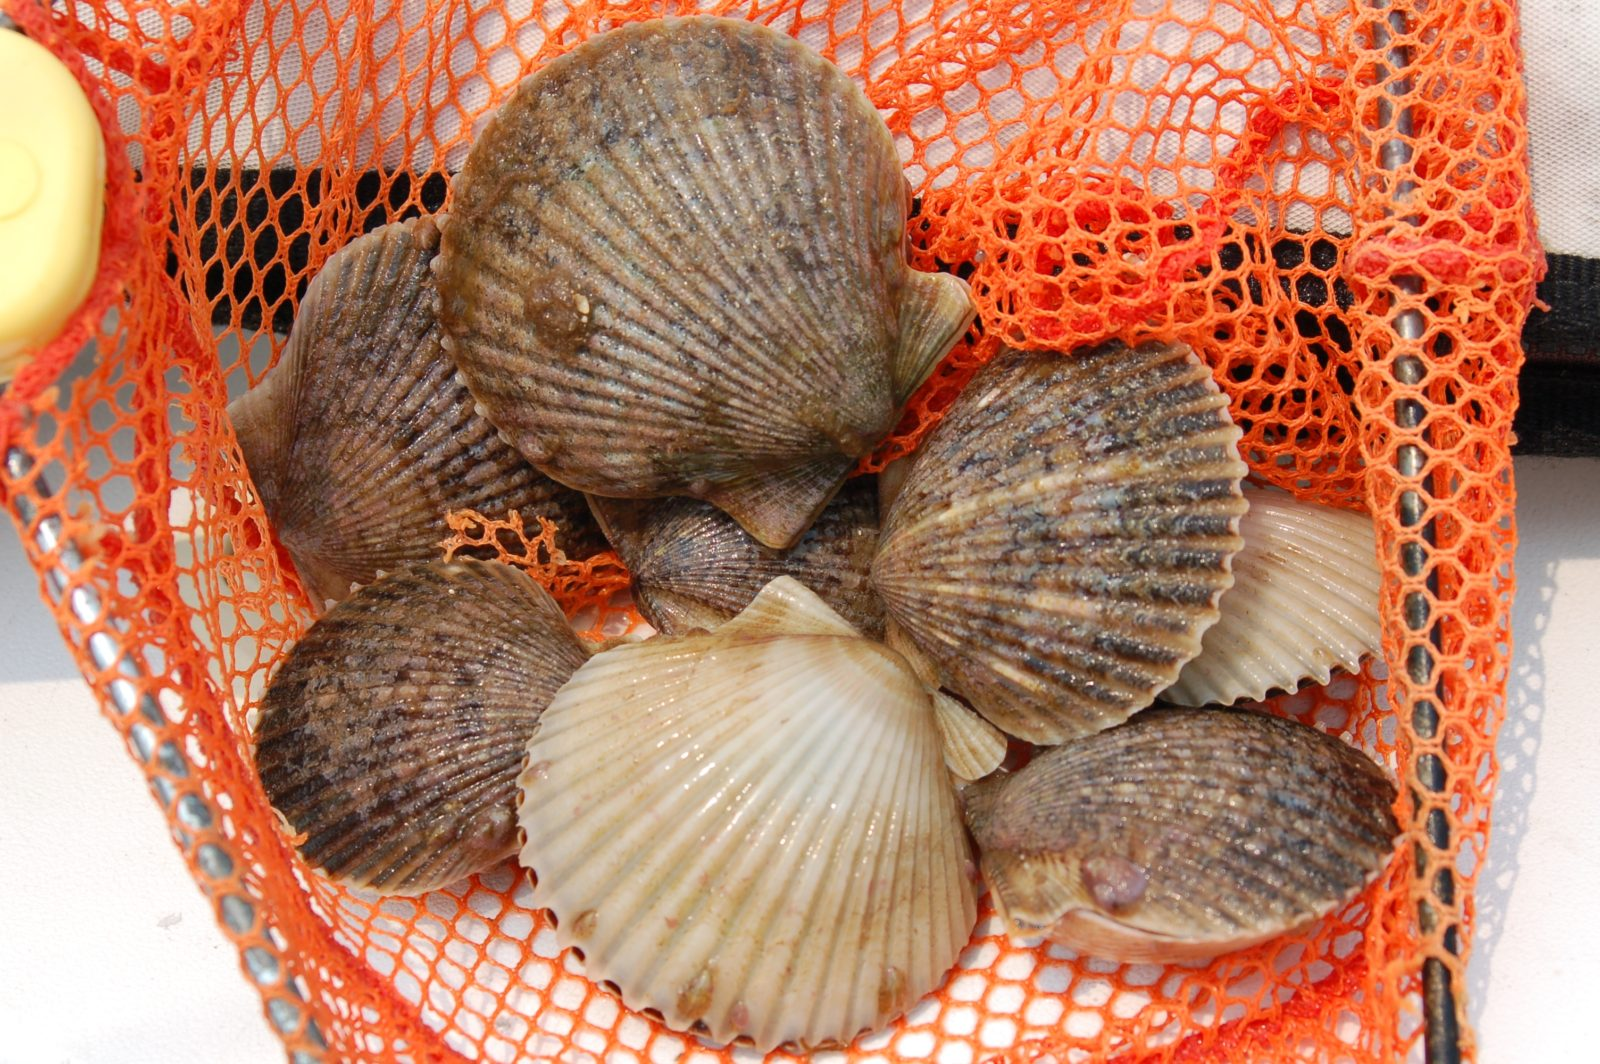 Treasure Hunting (for Bay Scallops!) in Taylor County, Florida